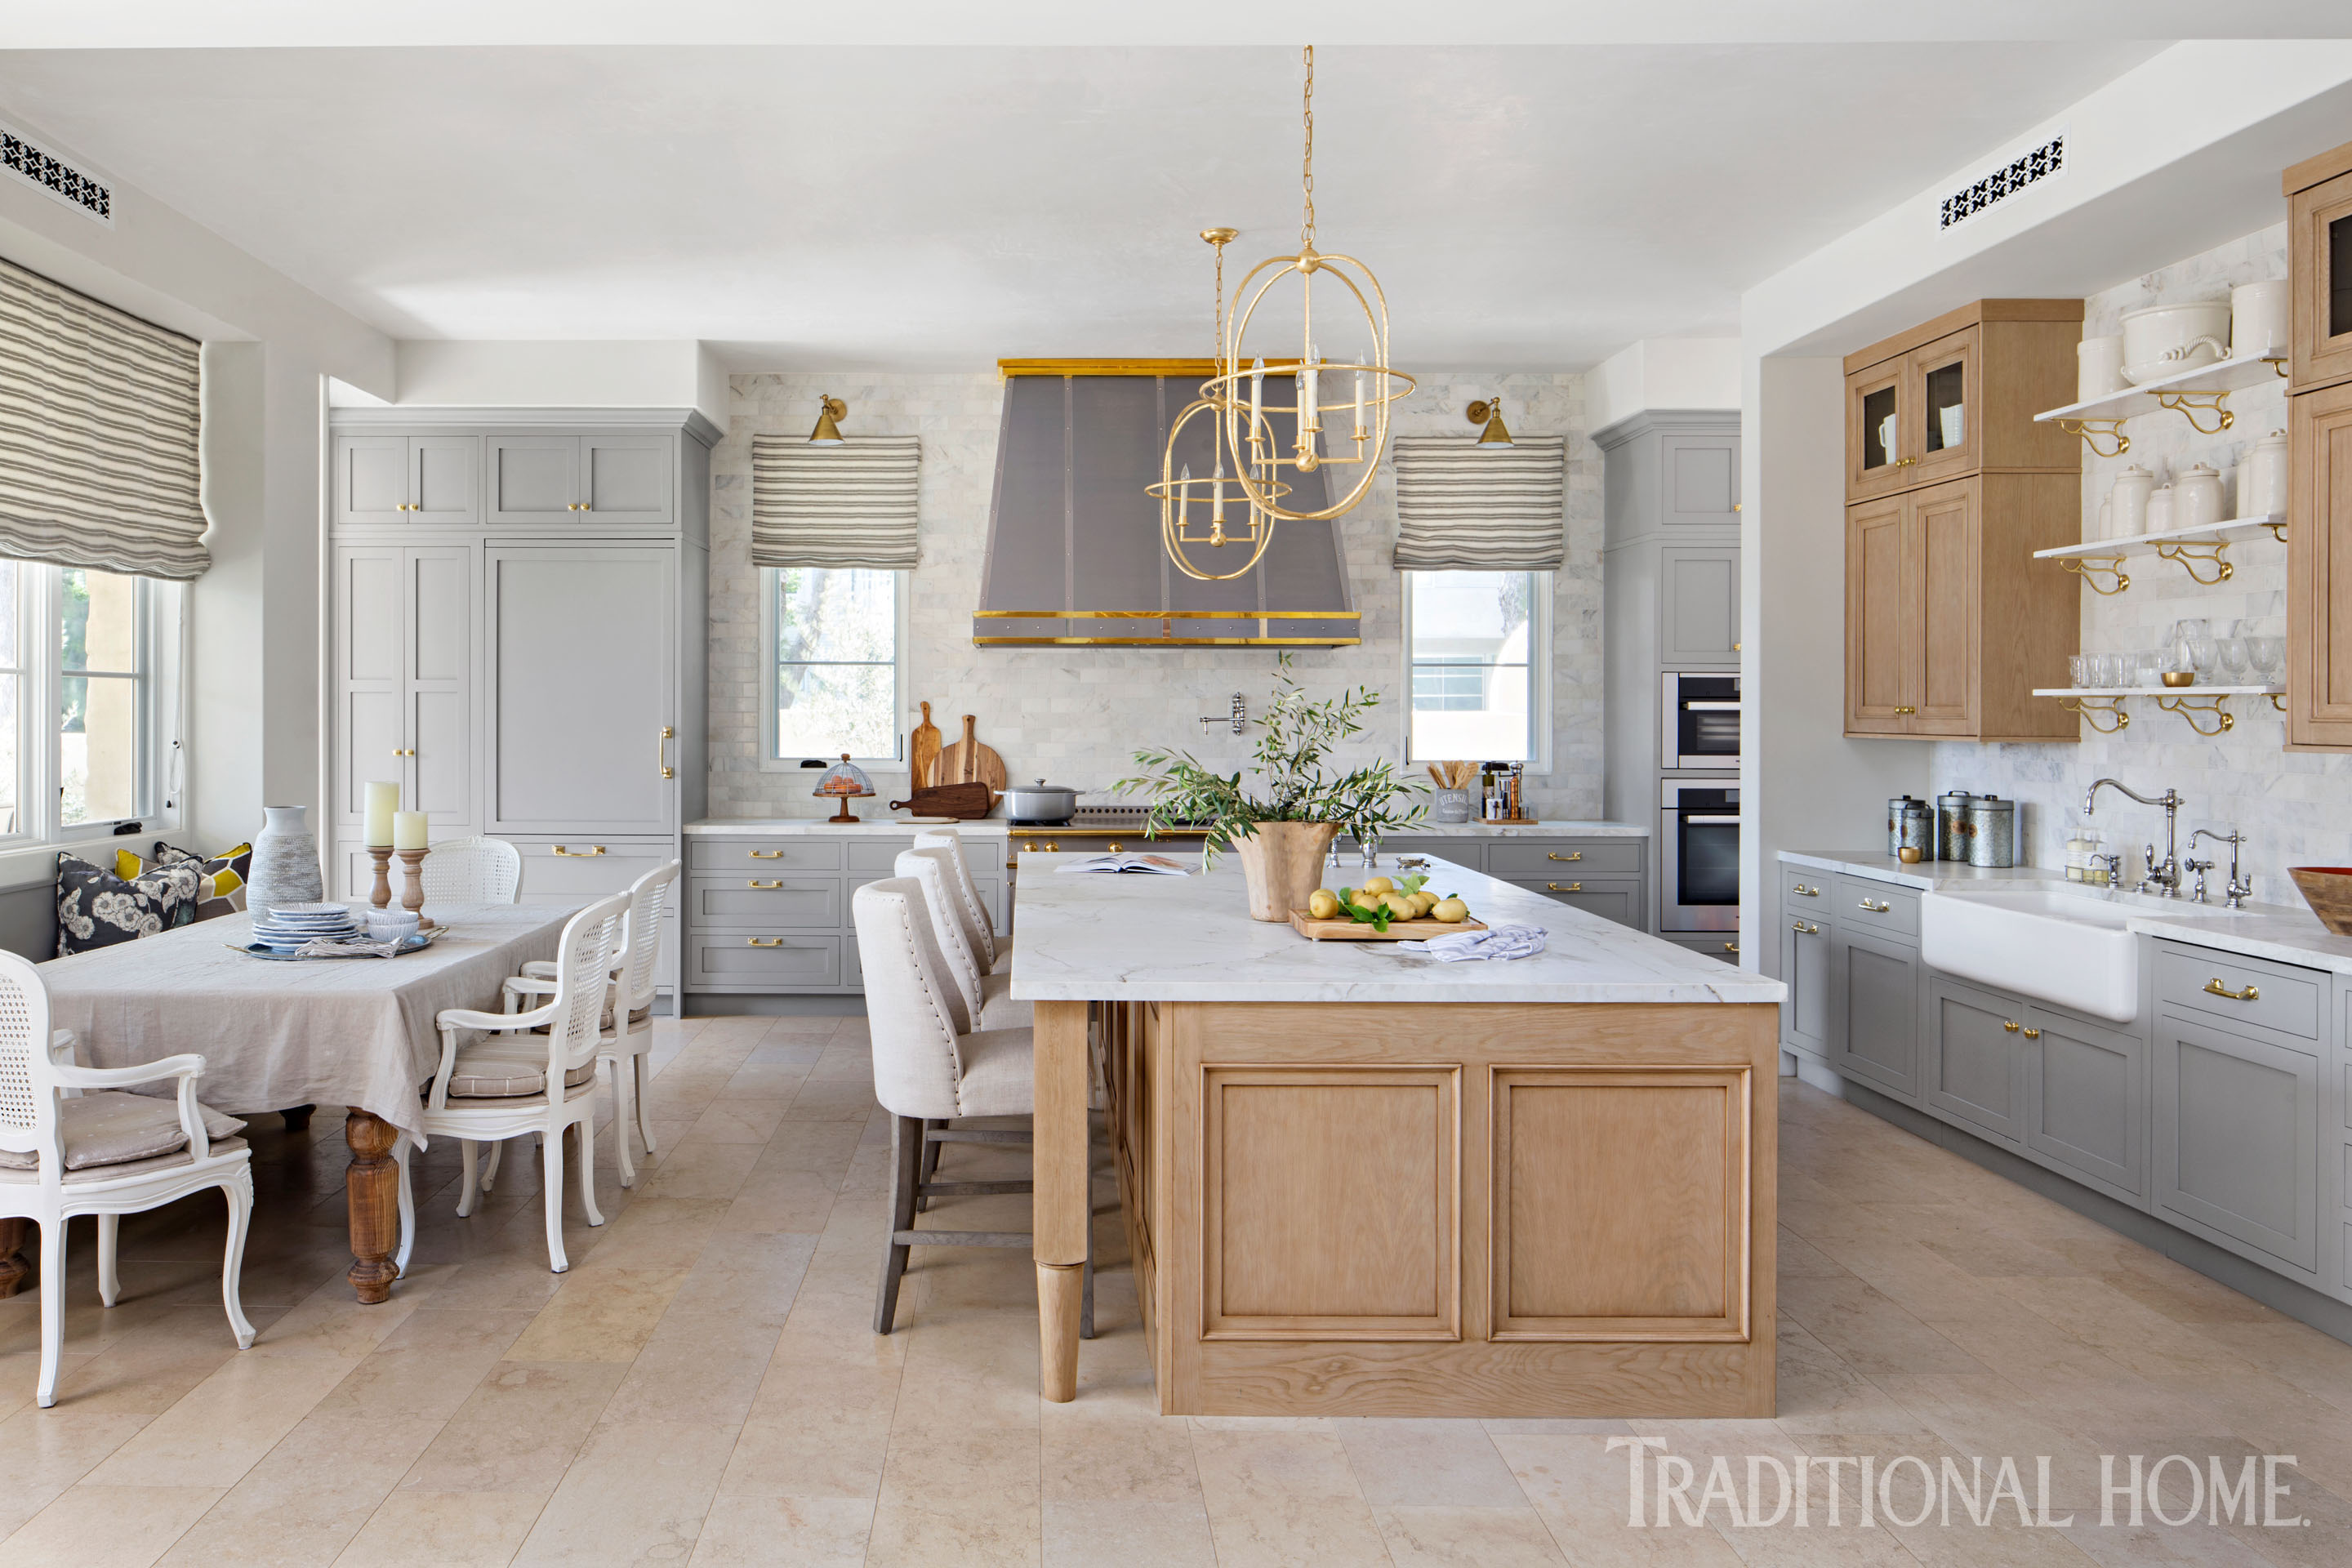 French Style Inspires a Modern Kitchen